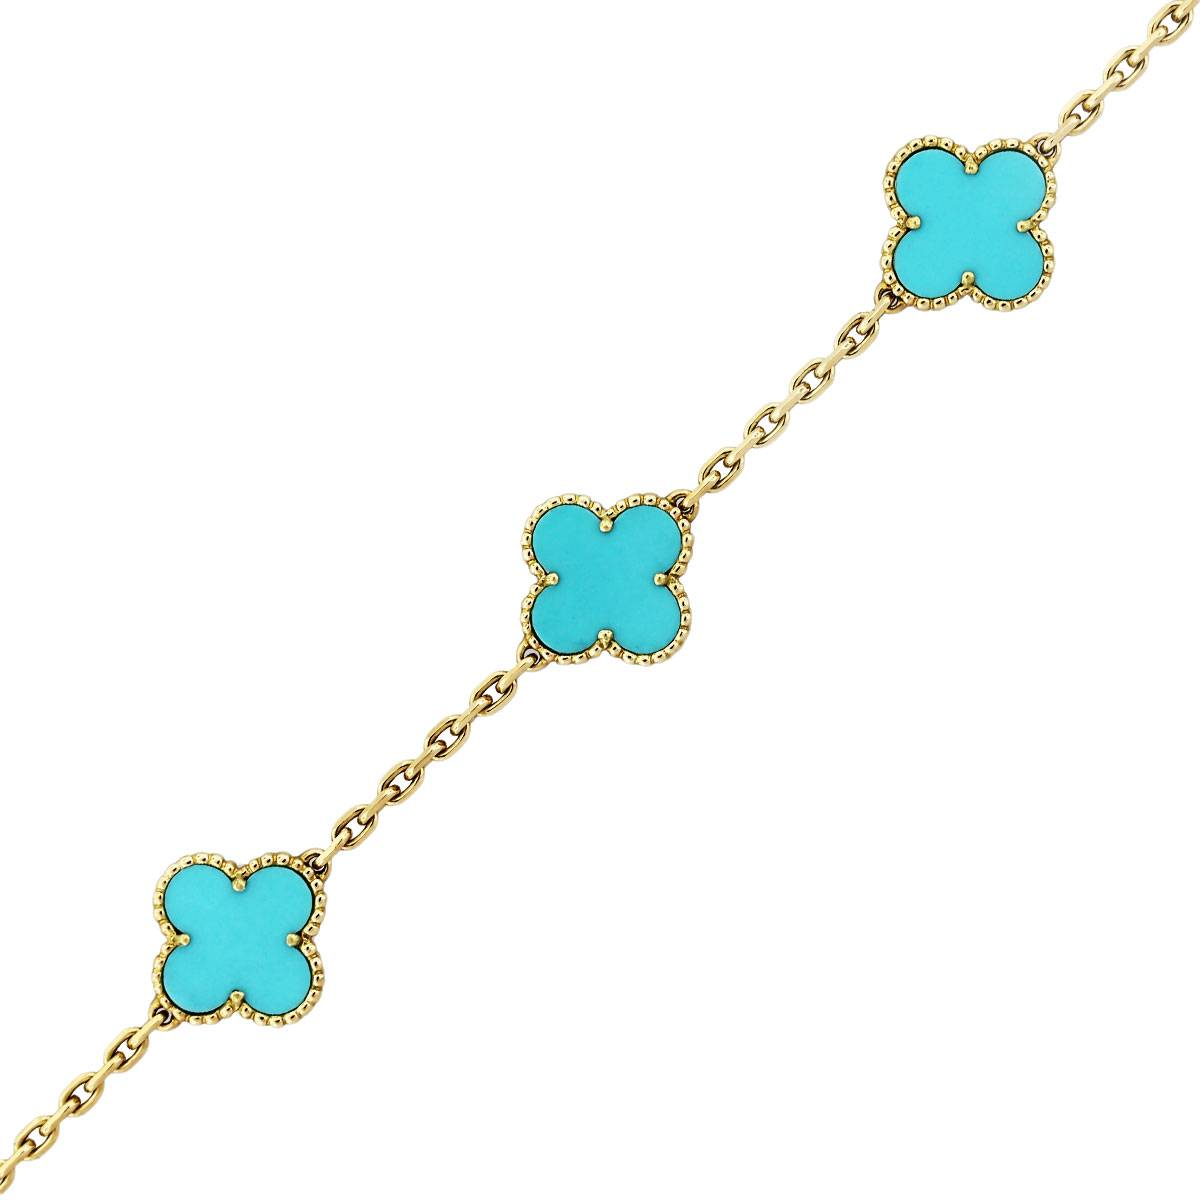 Van Cleef Vintage Alhambra Turquoise And 18k Yellow Gold